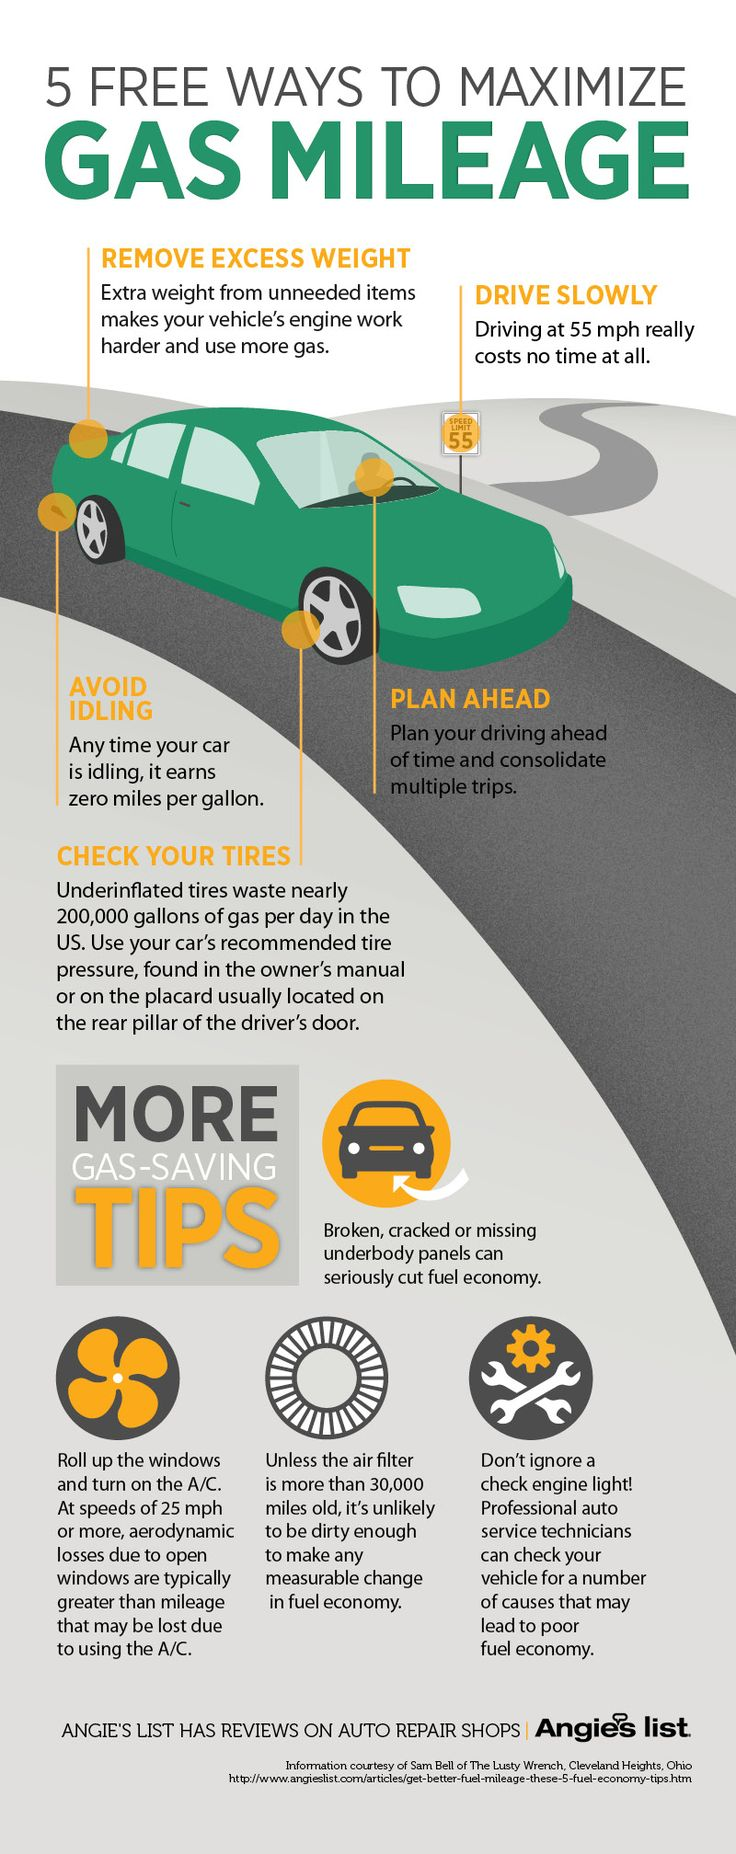 5 Free Ways to Maximize Your Gas Mileage Get the most out of every gallon with these tips to maximize your gas mileage, five of which won't cost you a penny ...